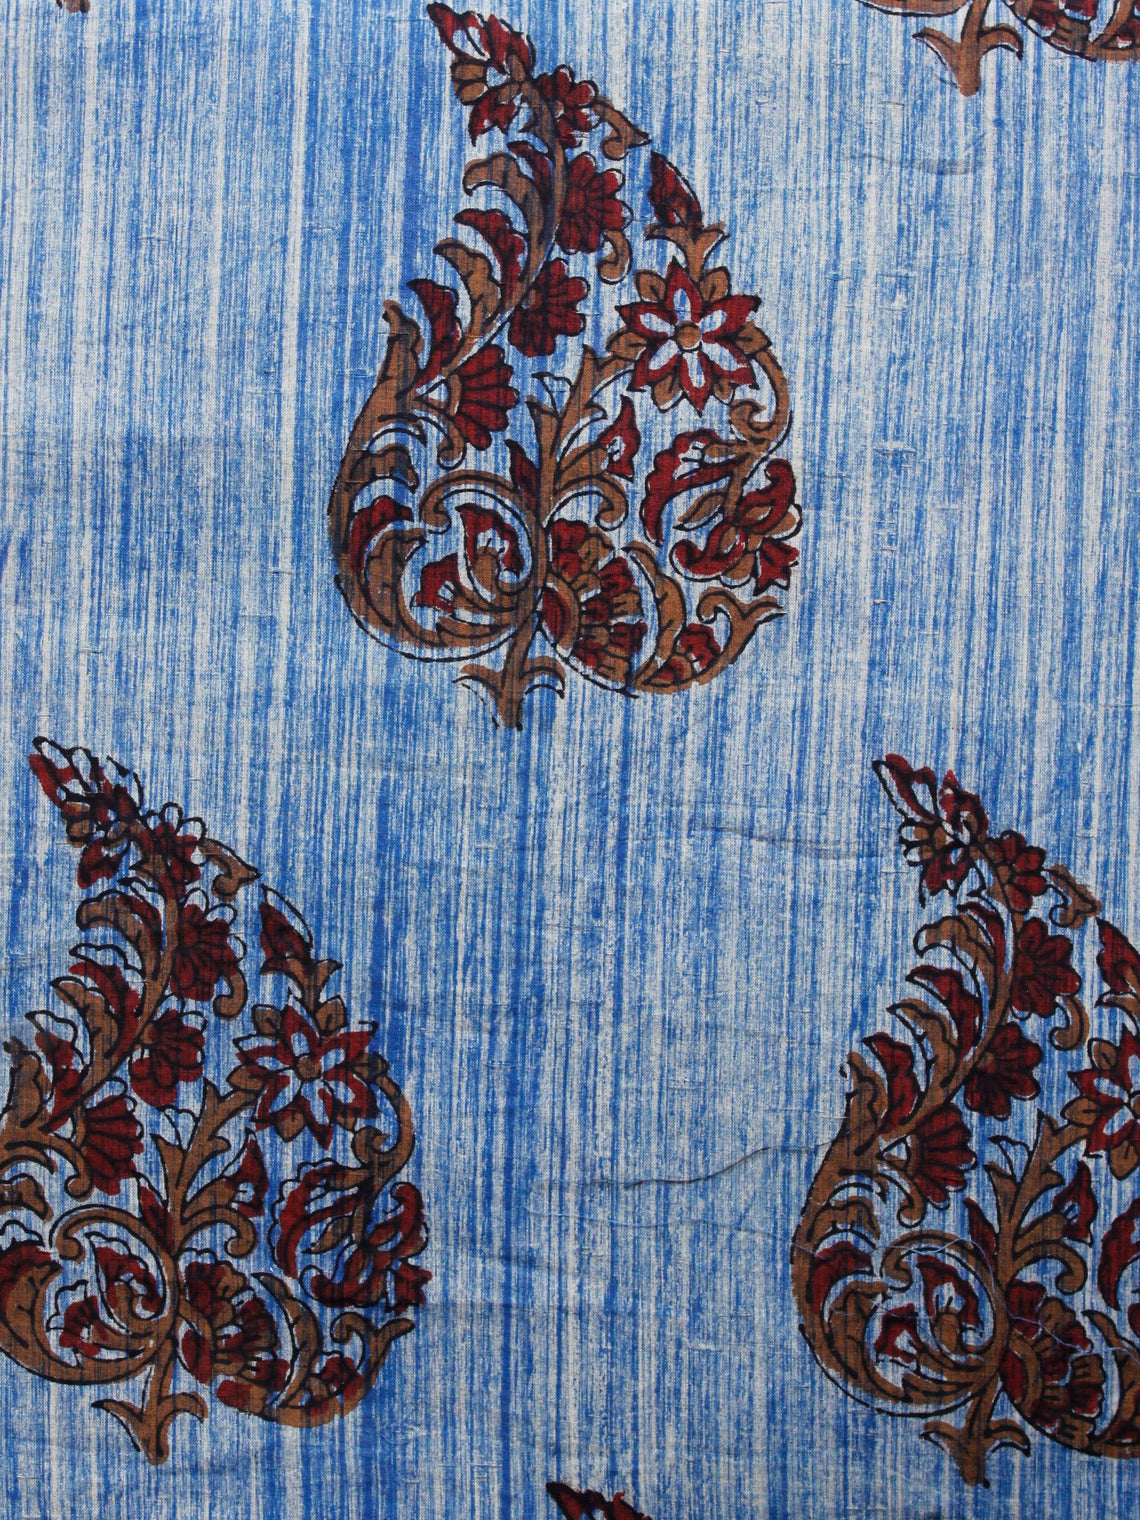 Indigo Ivory Peanut Brown Maroon Hand Block Printed Cotton Fabric Per Meter - F001F1559